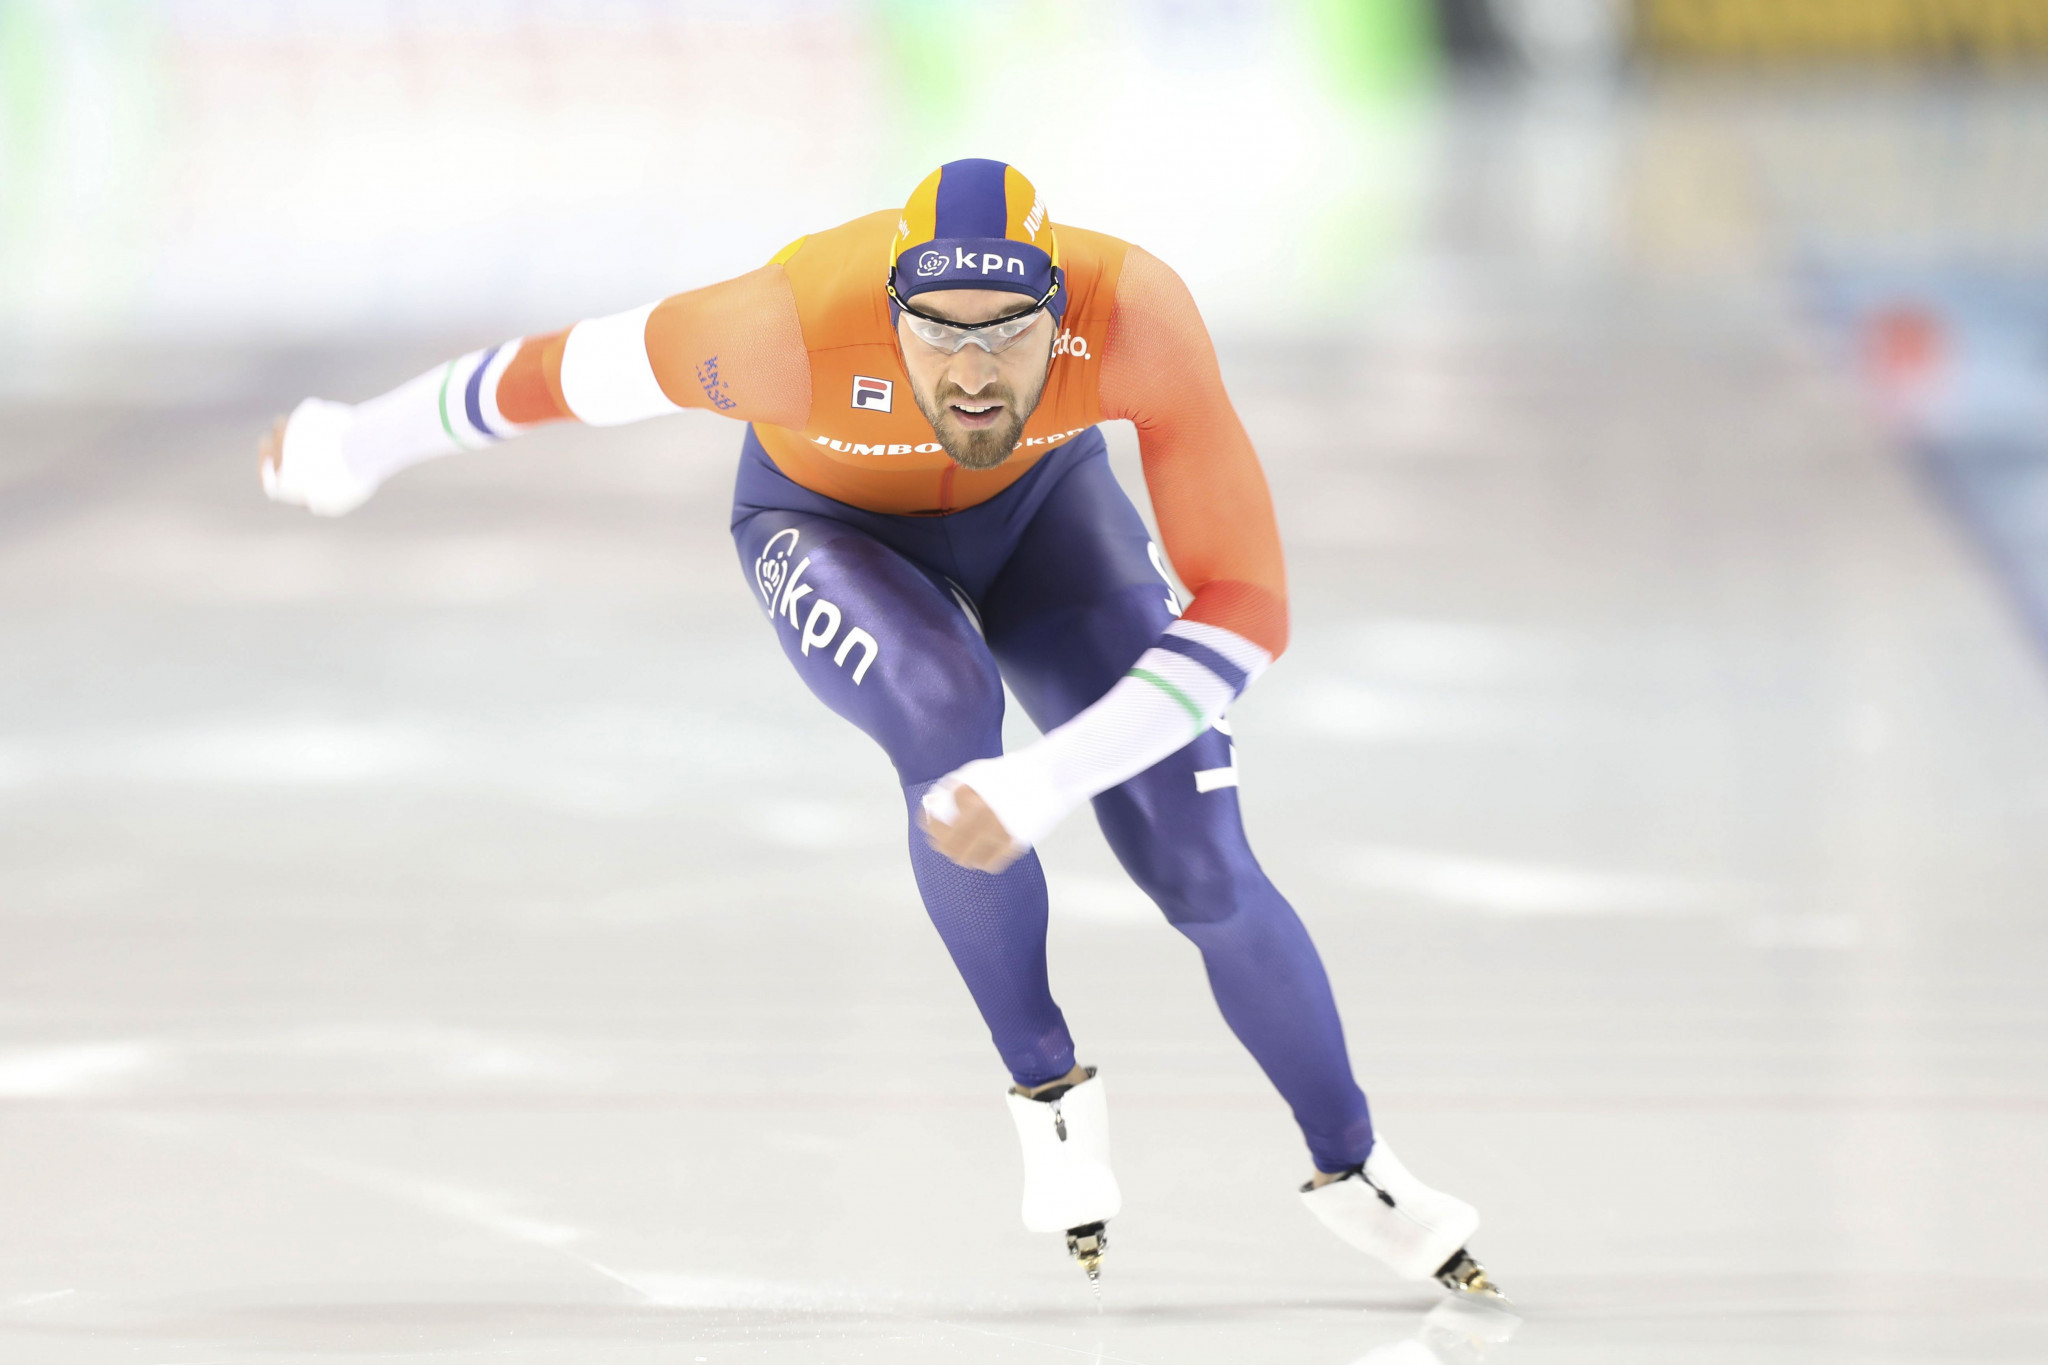 Dutch star Kjeld Nuis is among the athletes due to make their World Cup return this weekend ©Getty Images